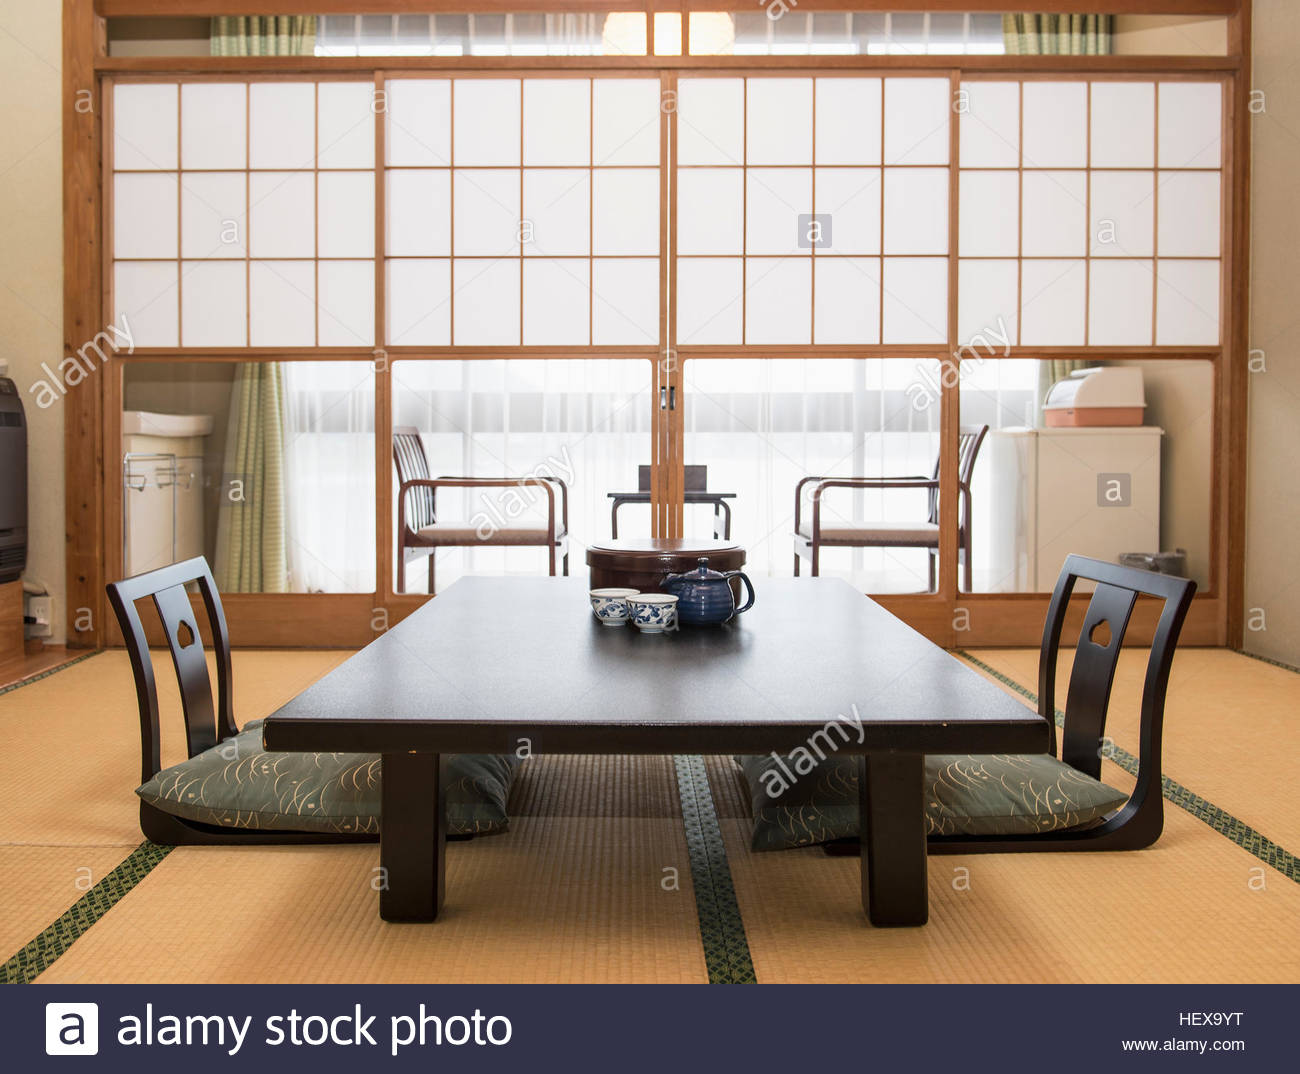 japanese dining room furniture. Typical Japanese Dining Room Furniture I